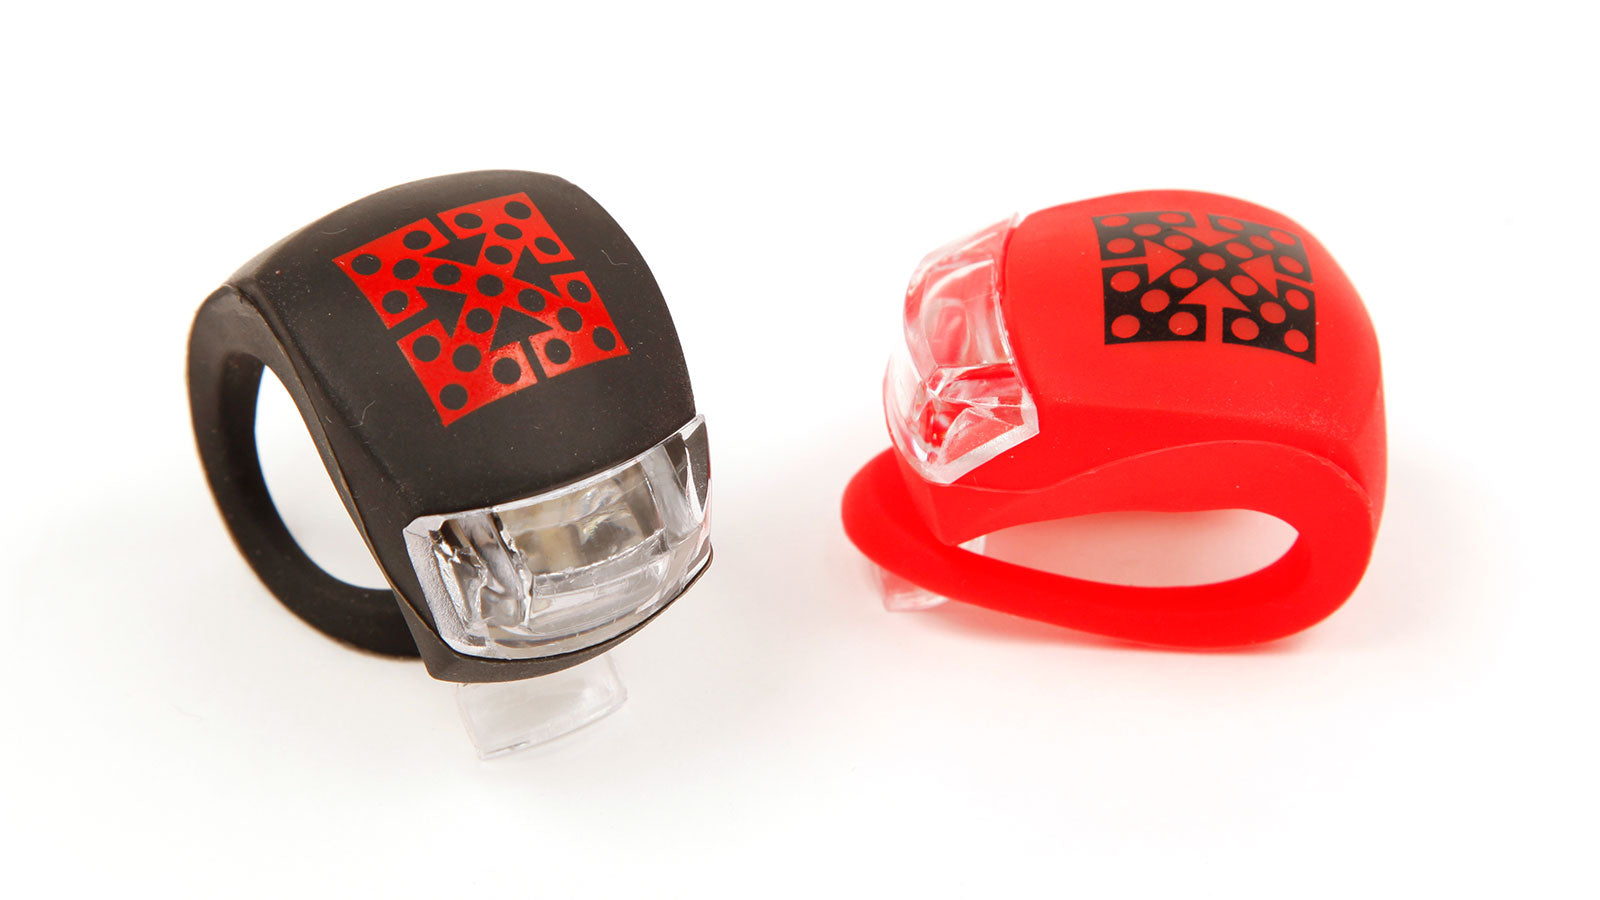 FitLit Bike Lights - Pair - Front/White & Rear/Red